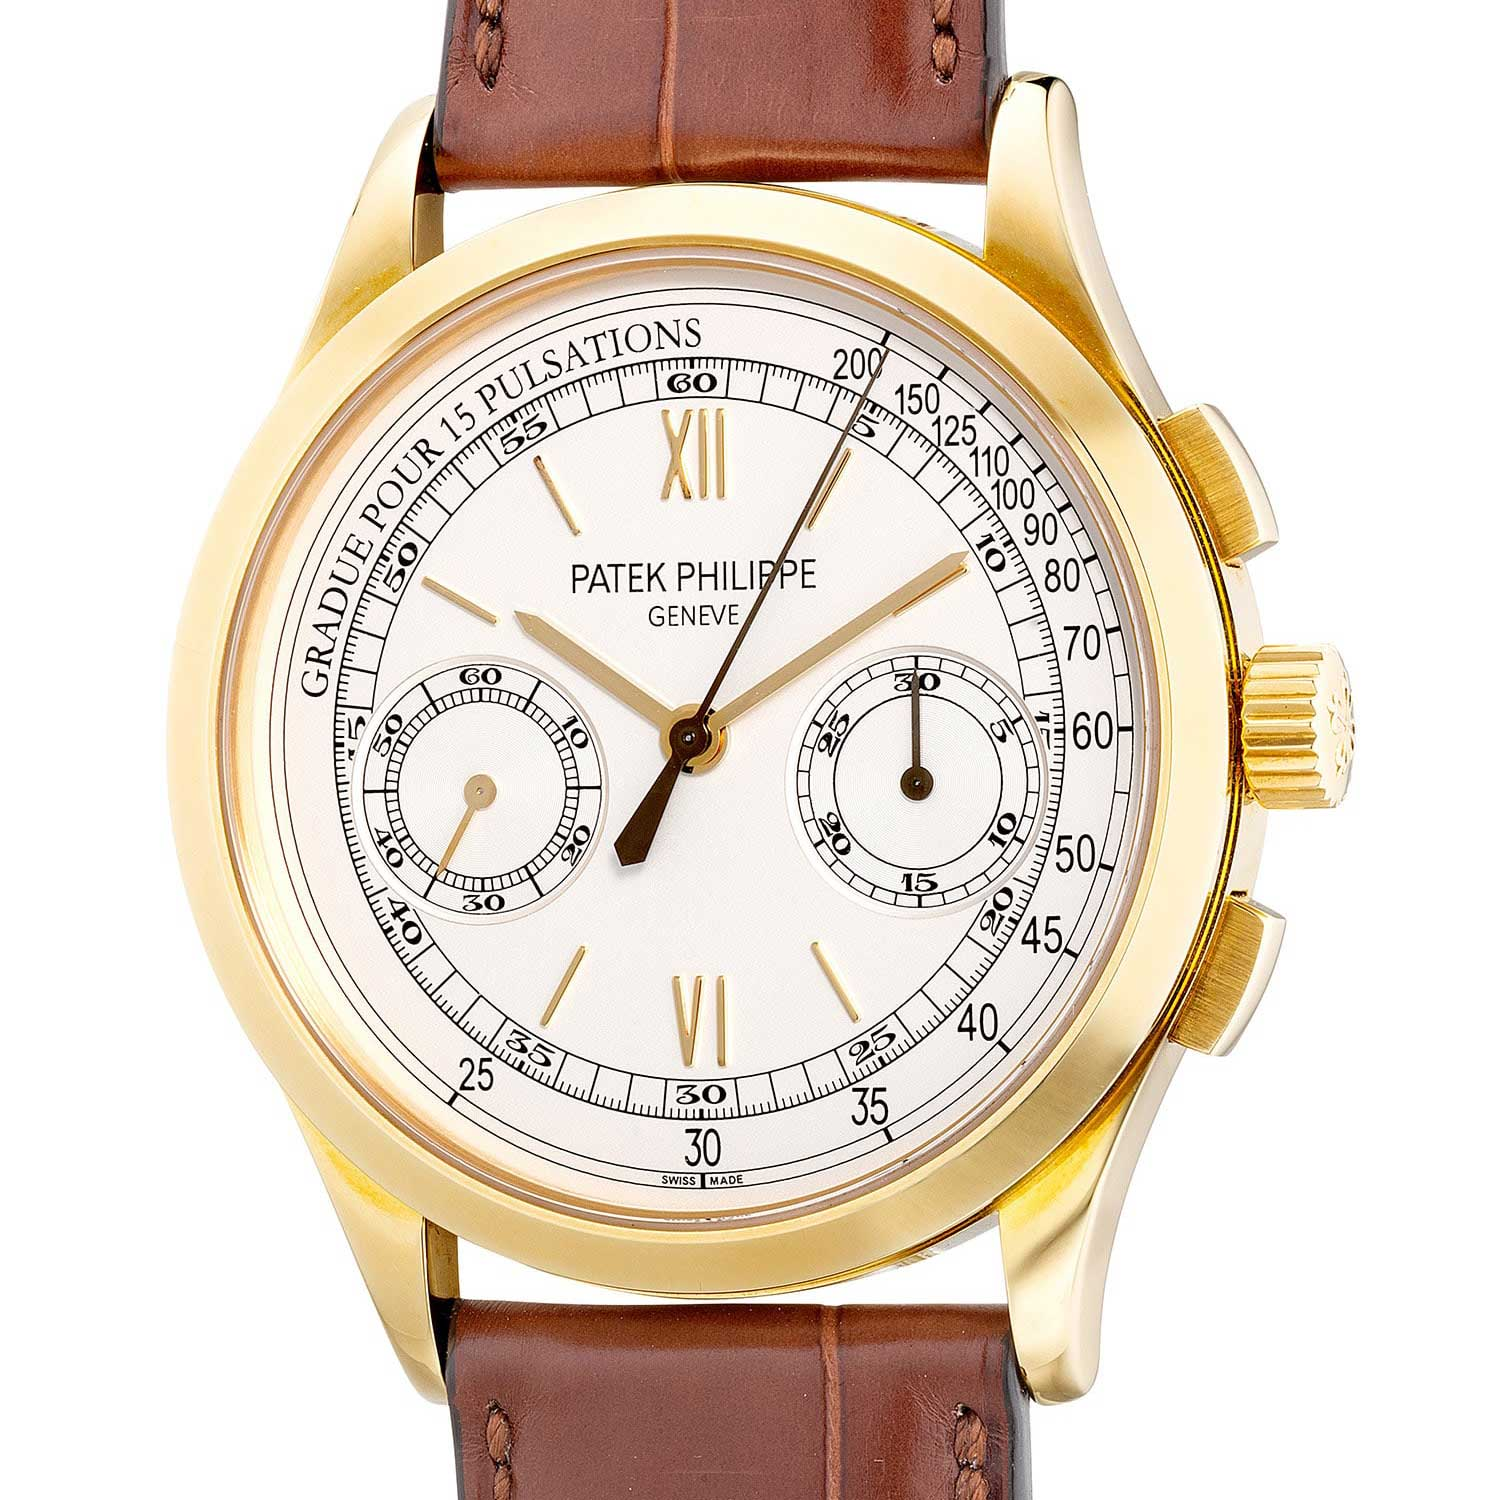 Patek Philippe launched the Ref. 5170J in 2010 as the first chronograph to be powered by their in-house designed calibre CH 29-535 PS (Image: Phillips.com)